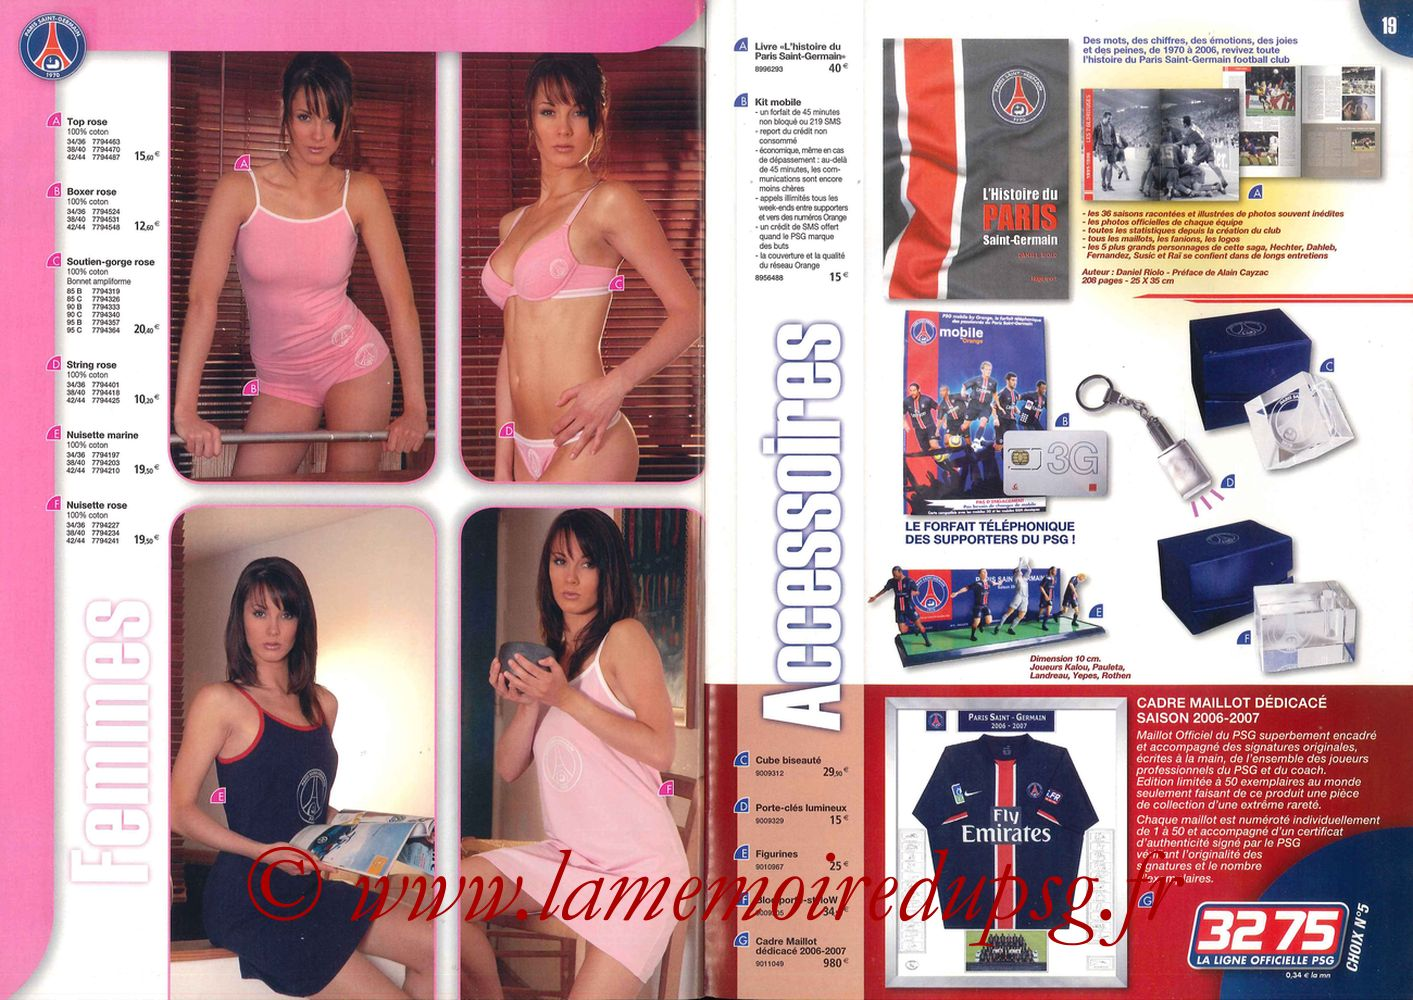 Catalogue PSG - 2006-07 - Pages 18 et 19